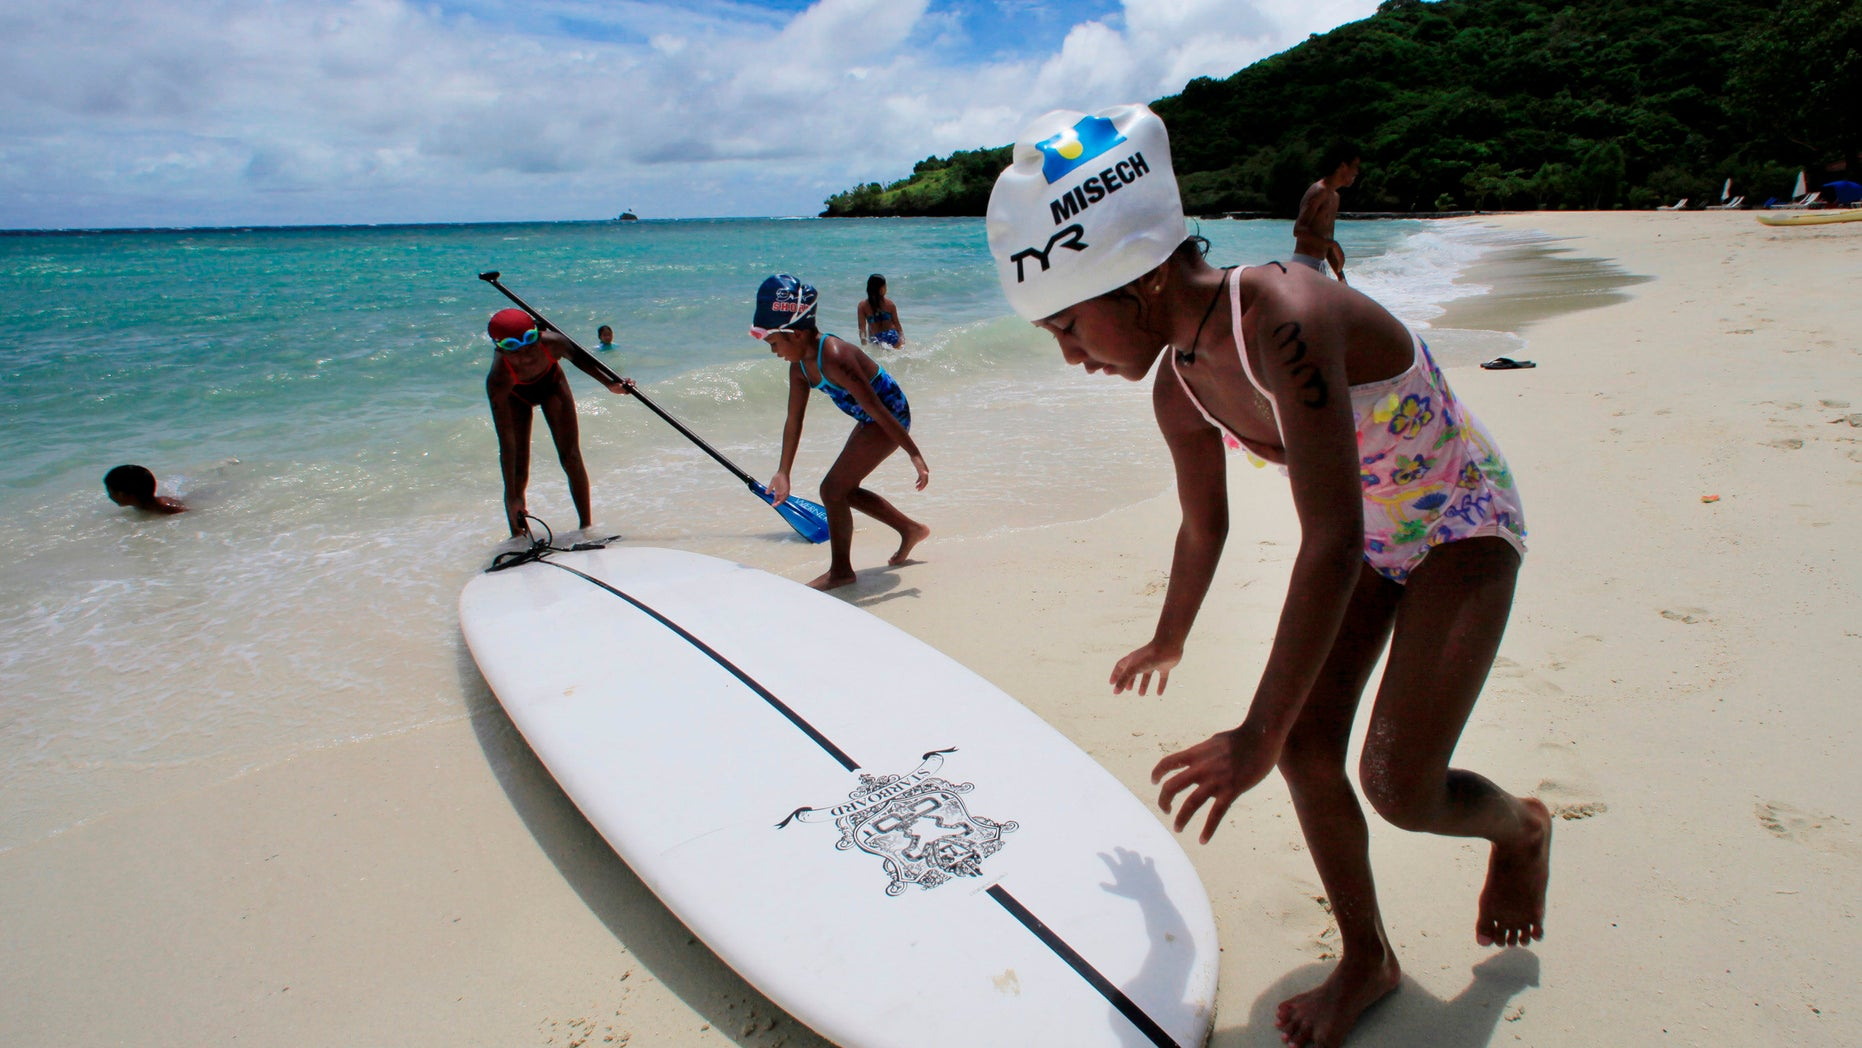 In this June 13, 2009 file photo, children play at a resort beach in Ngerkebesang, Palau.